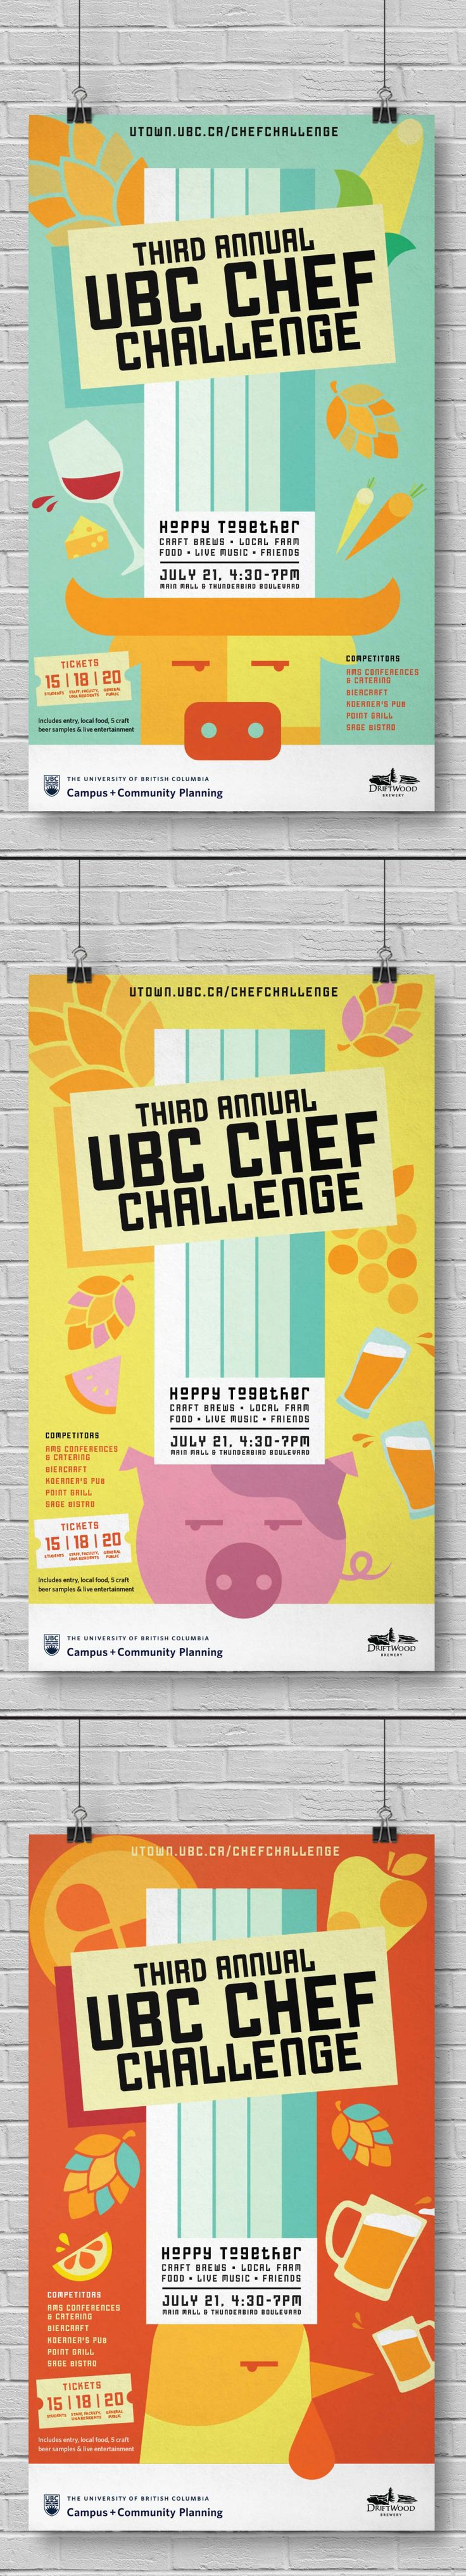 Poster Series for UBC's third annual Chef Challenge. A fun filled event packed with craft beer, farm fresh food and entertainment  |  Ion Brand Design #inspiration #flatillustration #illustration #campaign